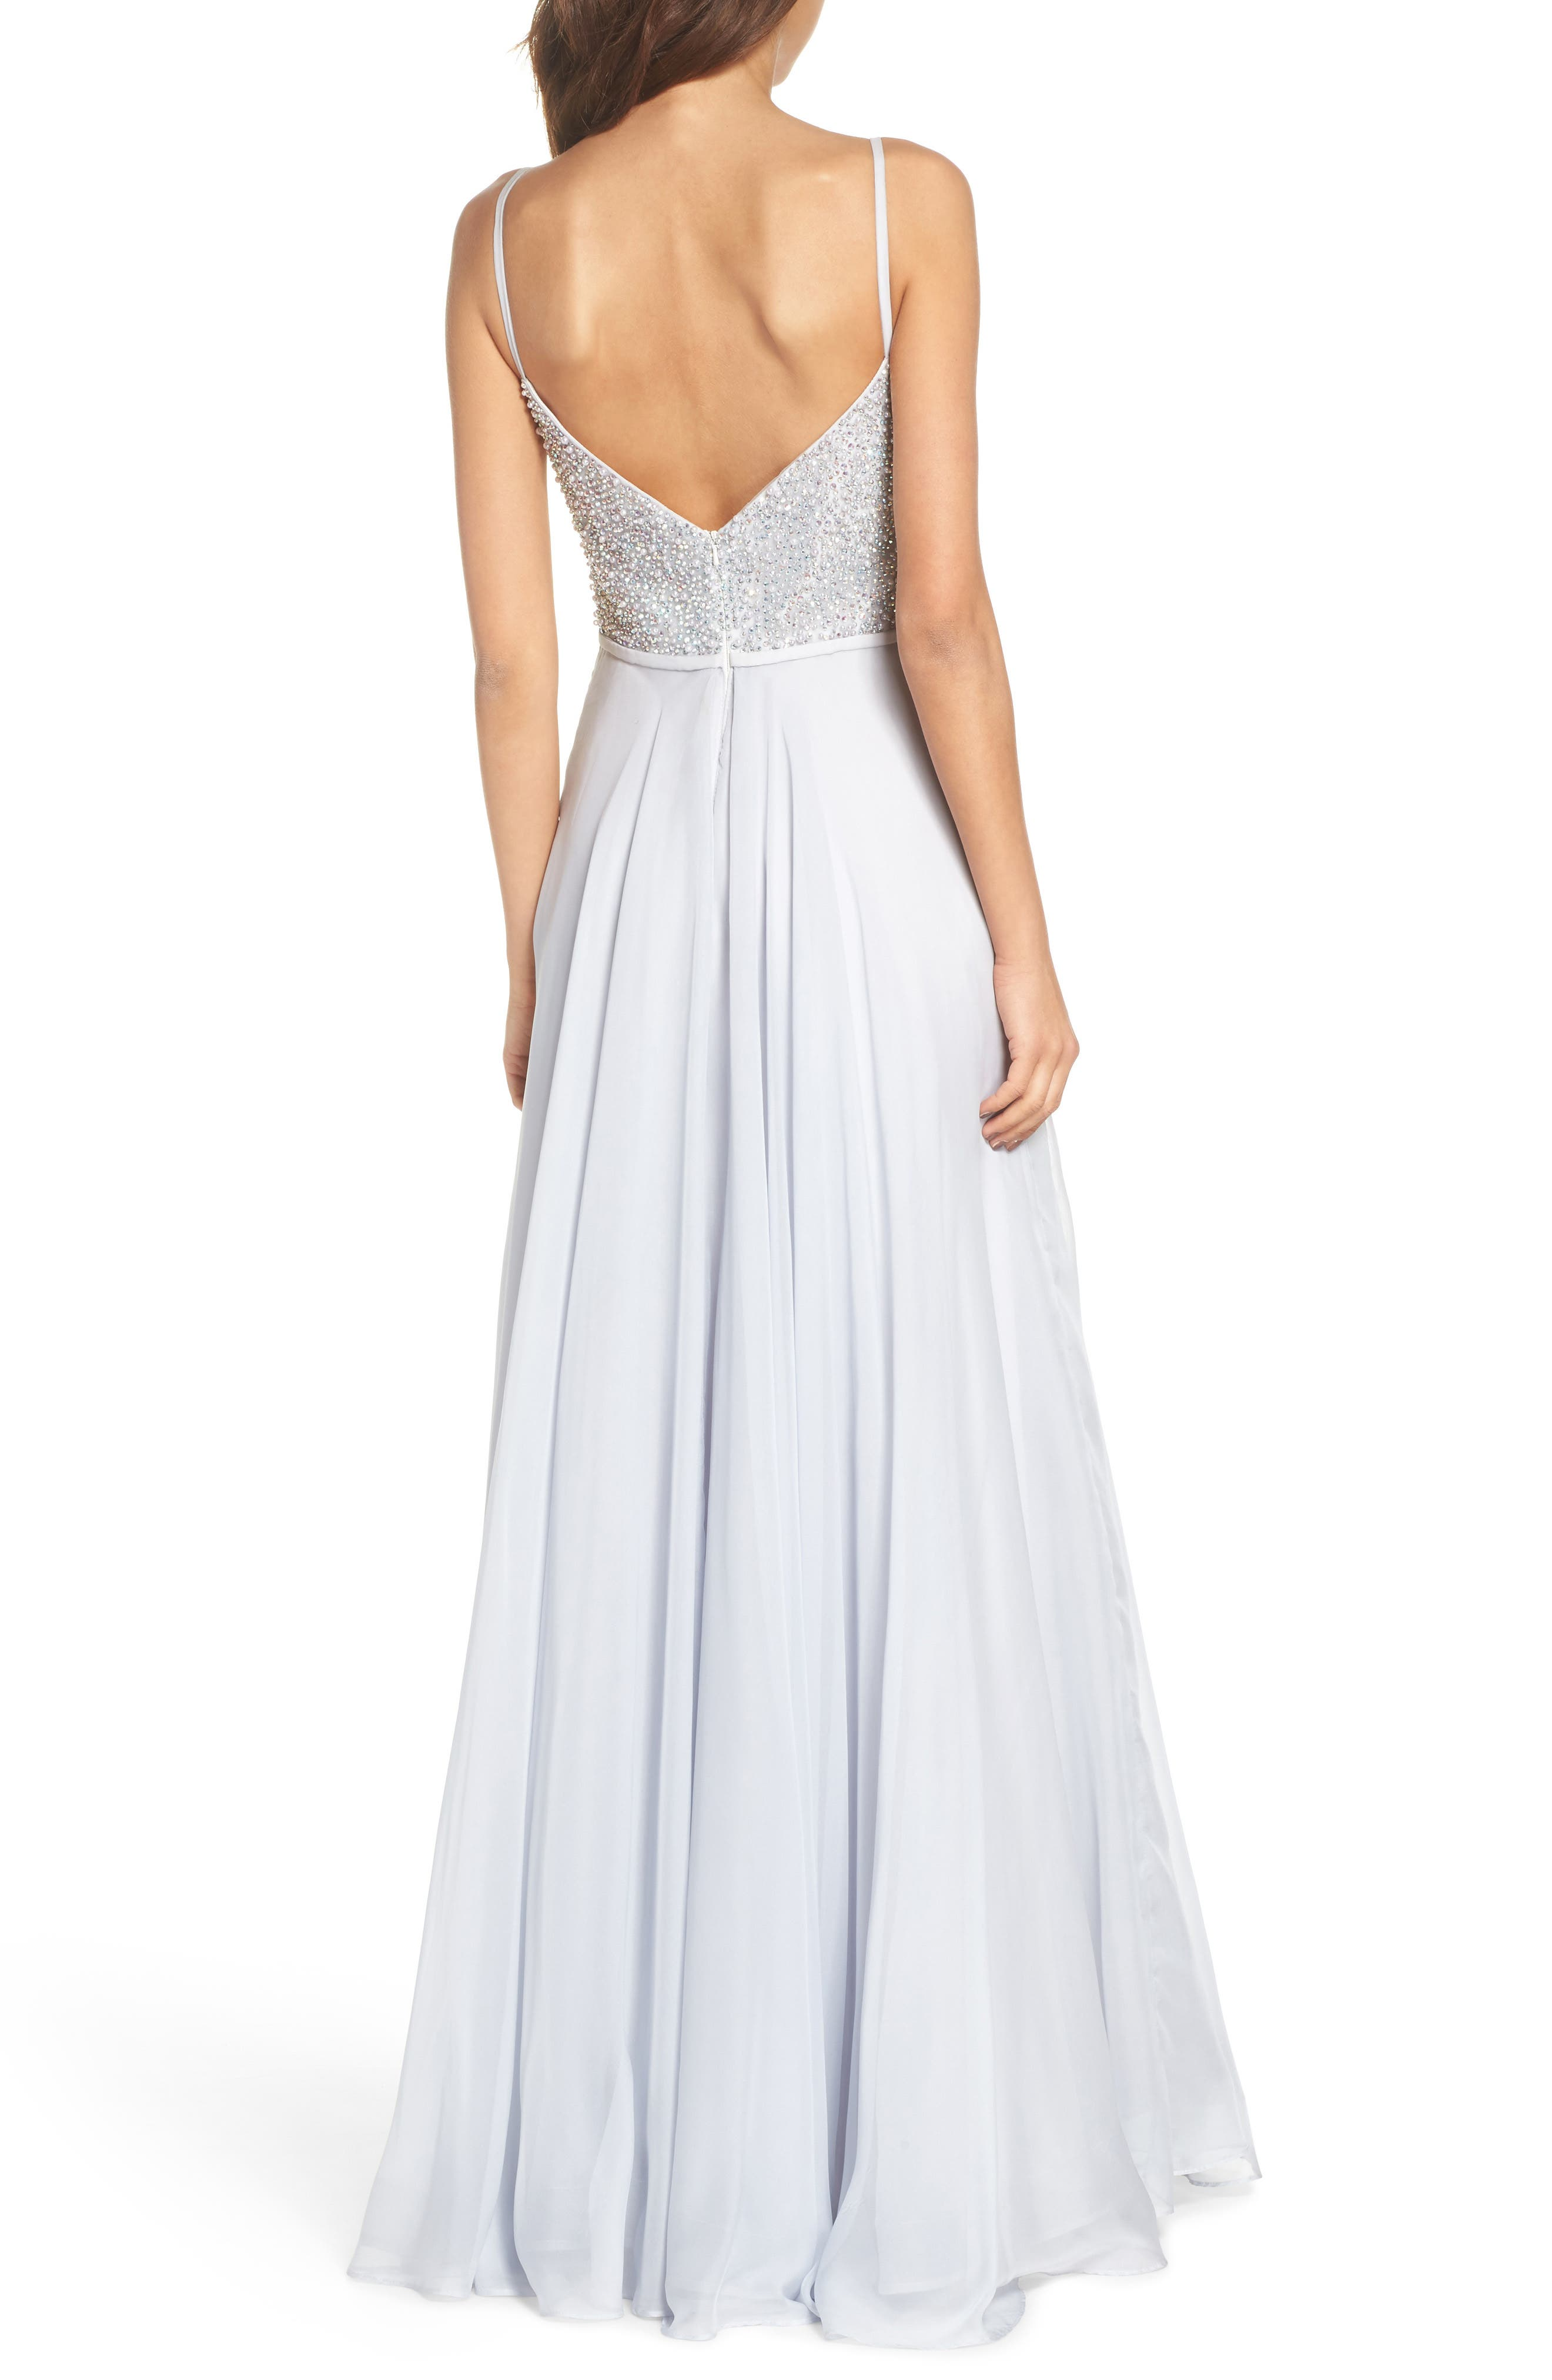 Beaded Chiffon Gown,                             Alternate thumbnail 2, color,                             040